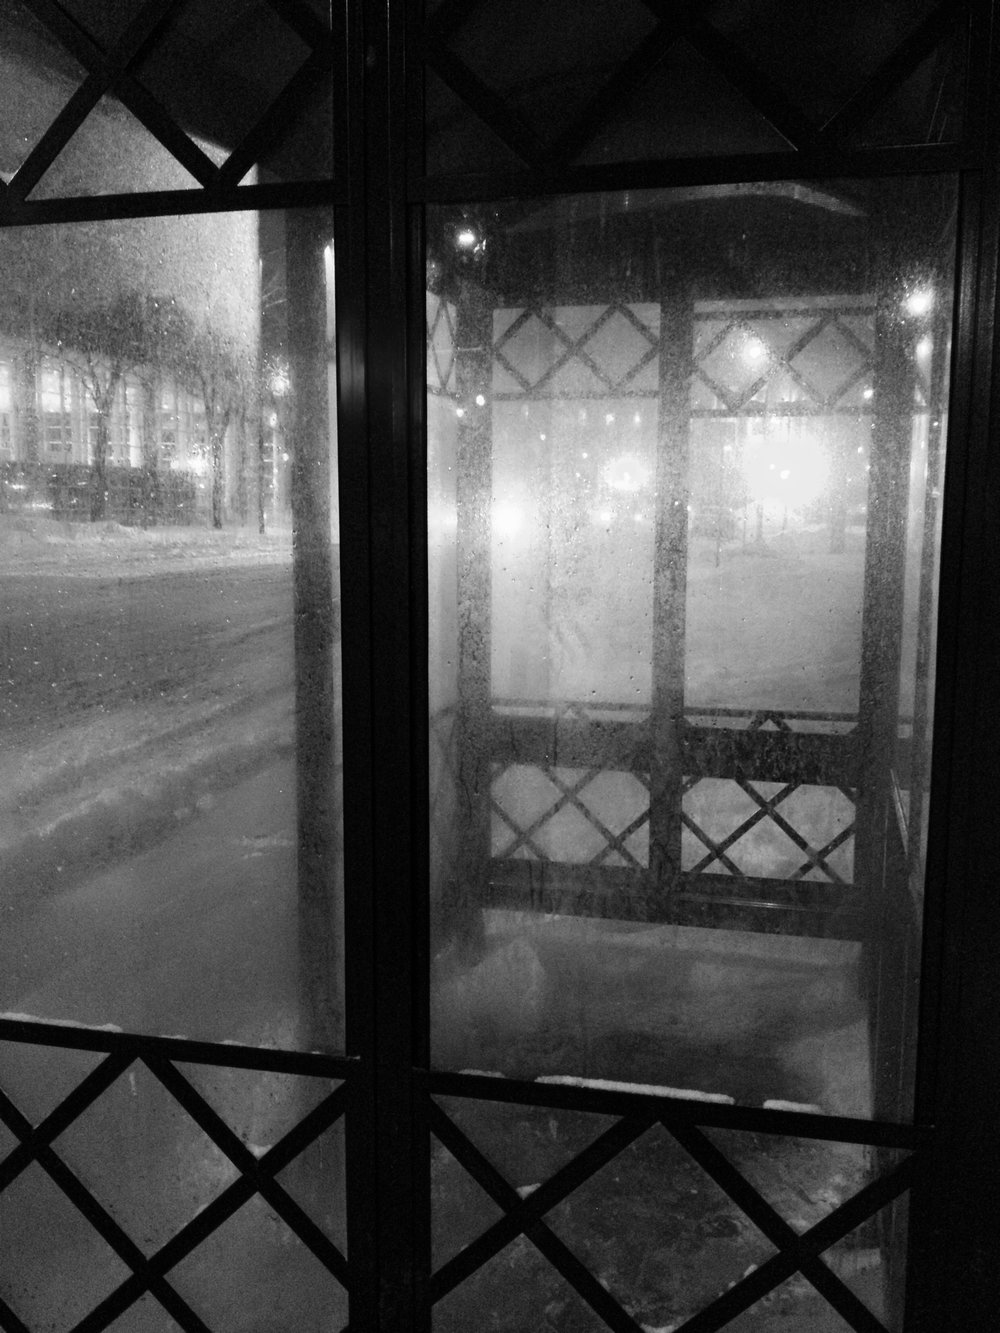 Shelter. East Washington Avenue. Madison, Wisconsin. February 2014. © William D. Walker